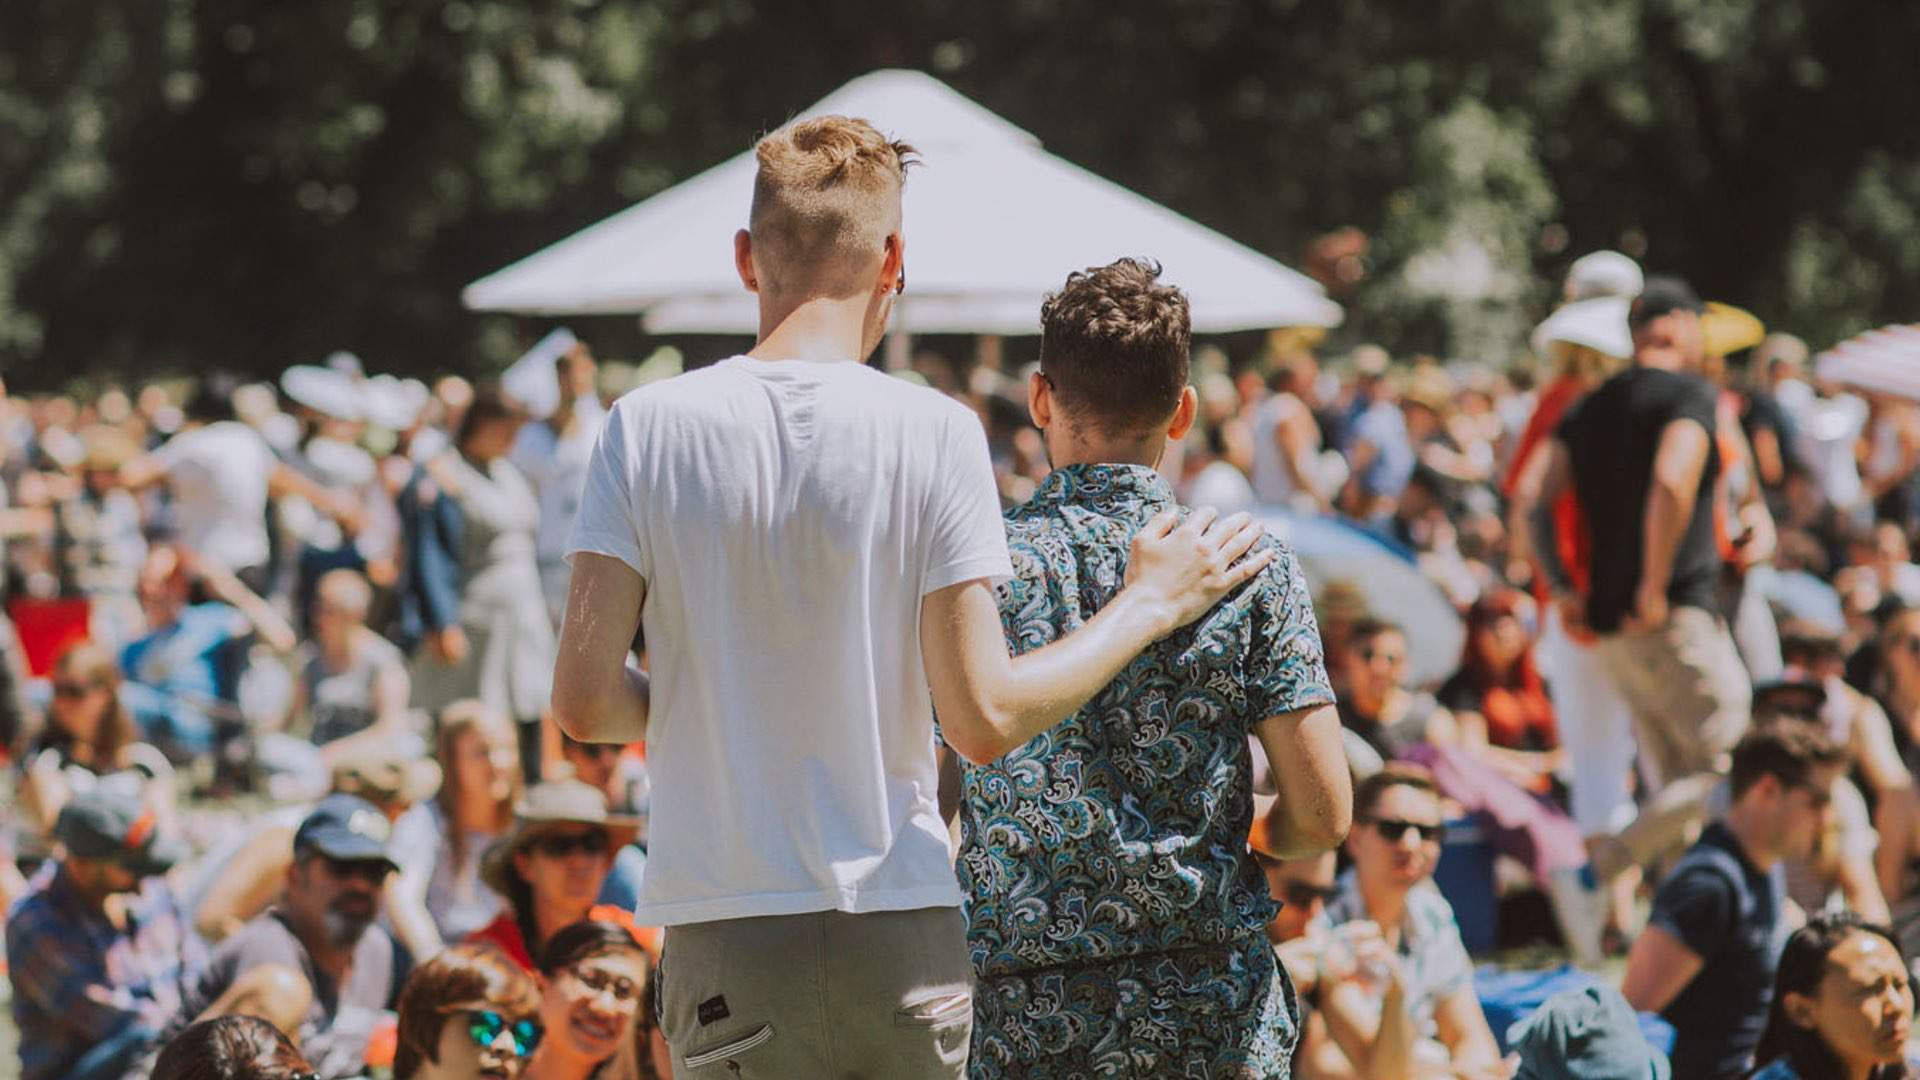 Melbourne Might Be Getting a New Major Pride Festival